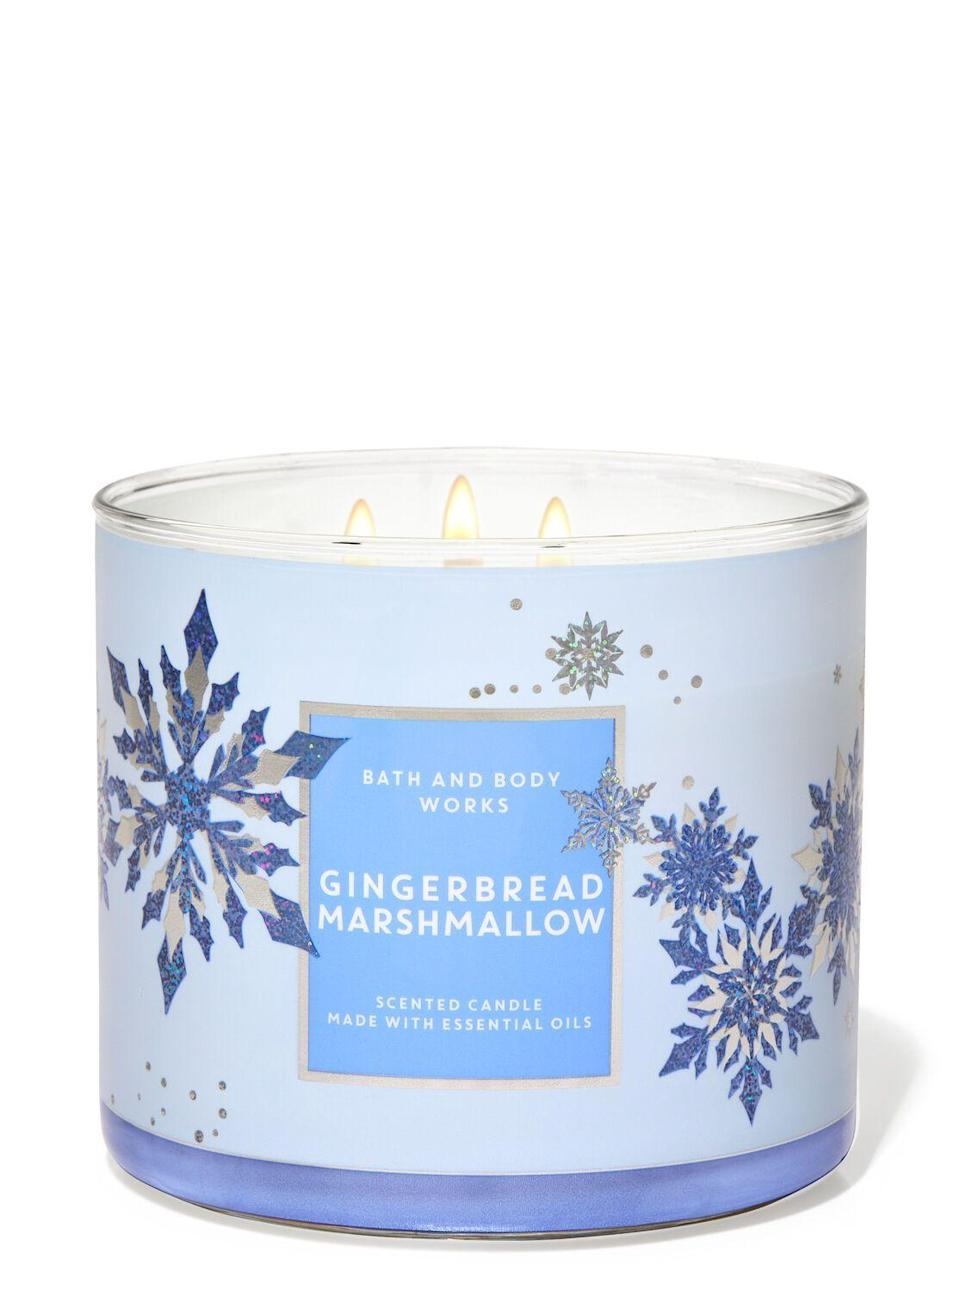 "<p><strong>Bath & Body Works</strong></p><p>bathandbodyworks.com</p><p><strong>$24.50</strong></p><p><a href=""https://www.bathandbodyworks.com/p/gingerbread-marshmallow-3-wick-candle-026178787.html"" rel=""nofollow noopener"" target=""_blank"" data-ylk=""slk:Shop Now"" class=""link rapid-noclick-resp"">Shop Now</a></p><p>Honestly I forgot I had a candle burning at most poinst with this one but when I *did* remember, I liked it. It's cute!</p>"